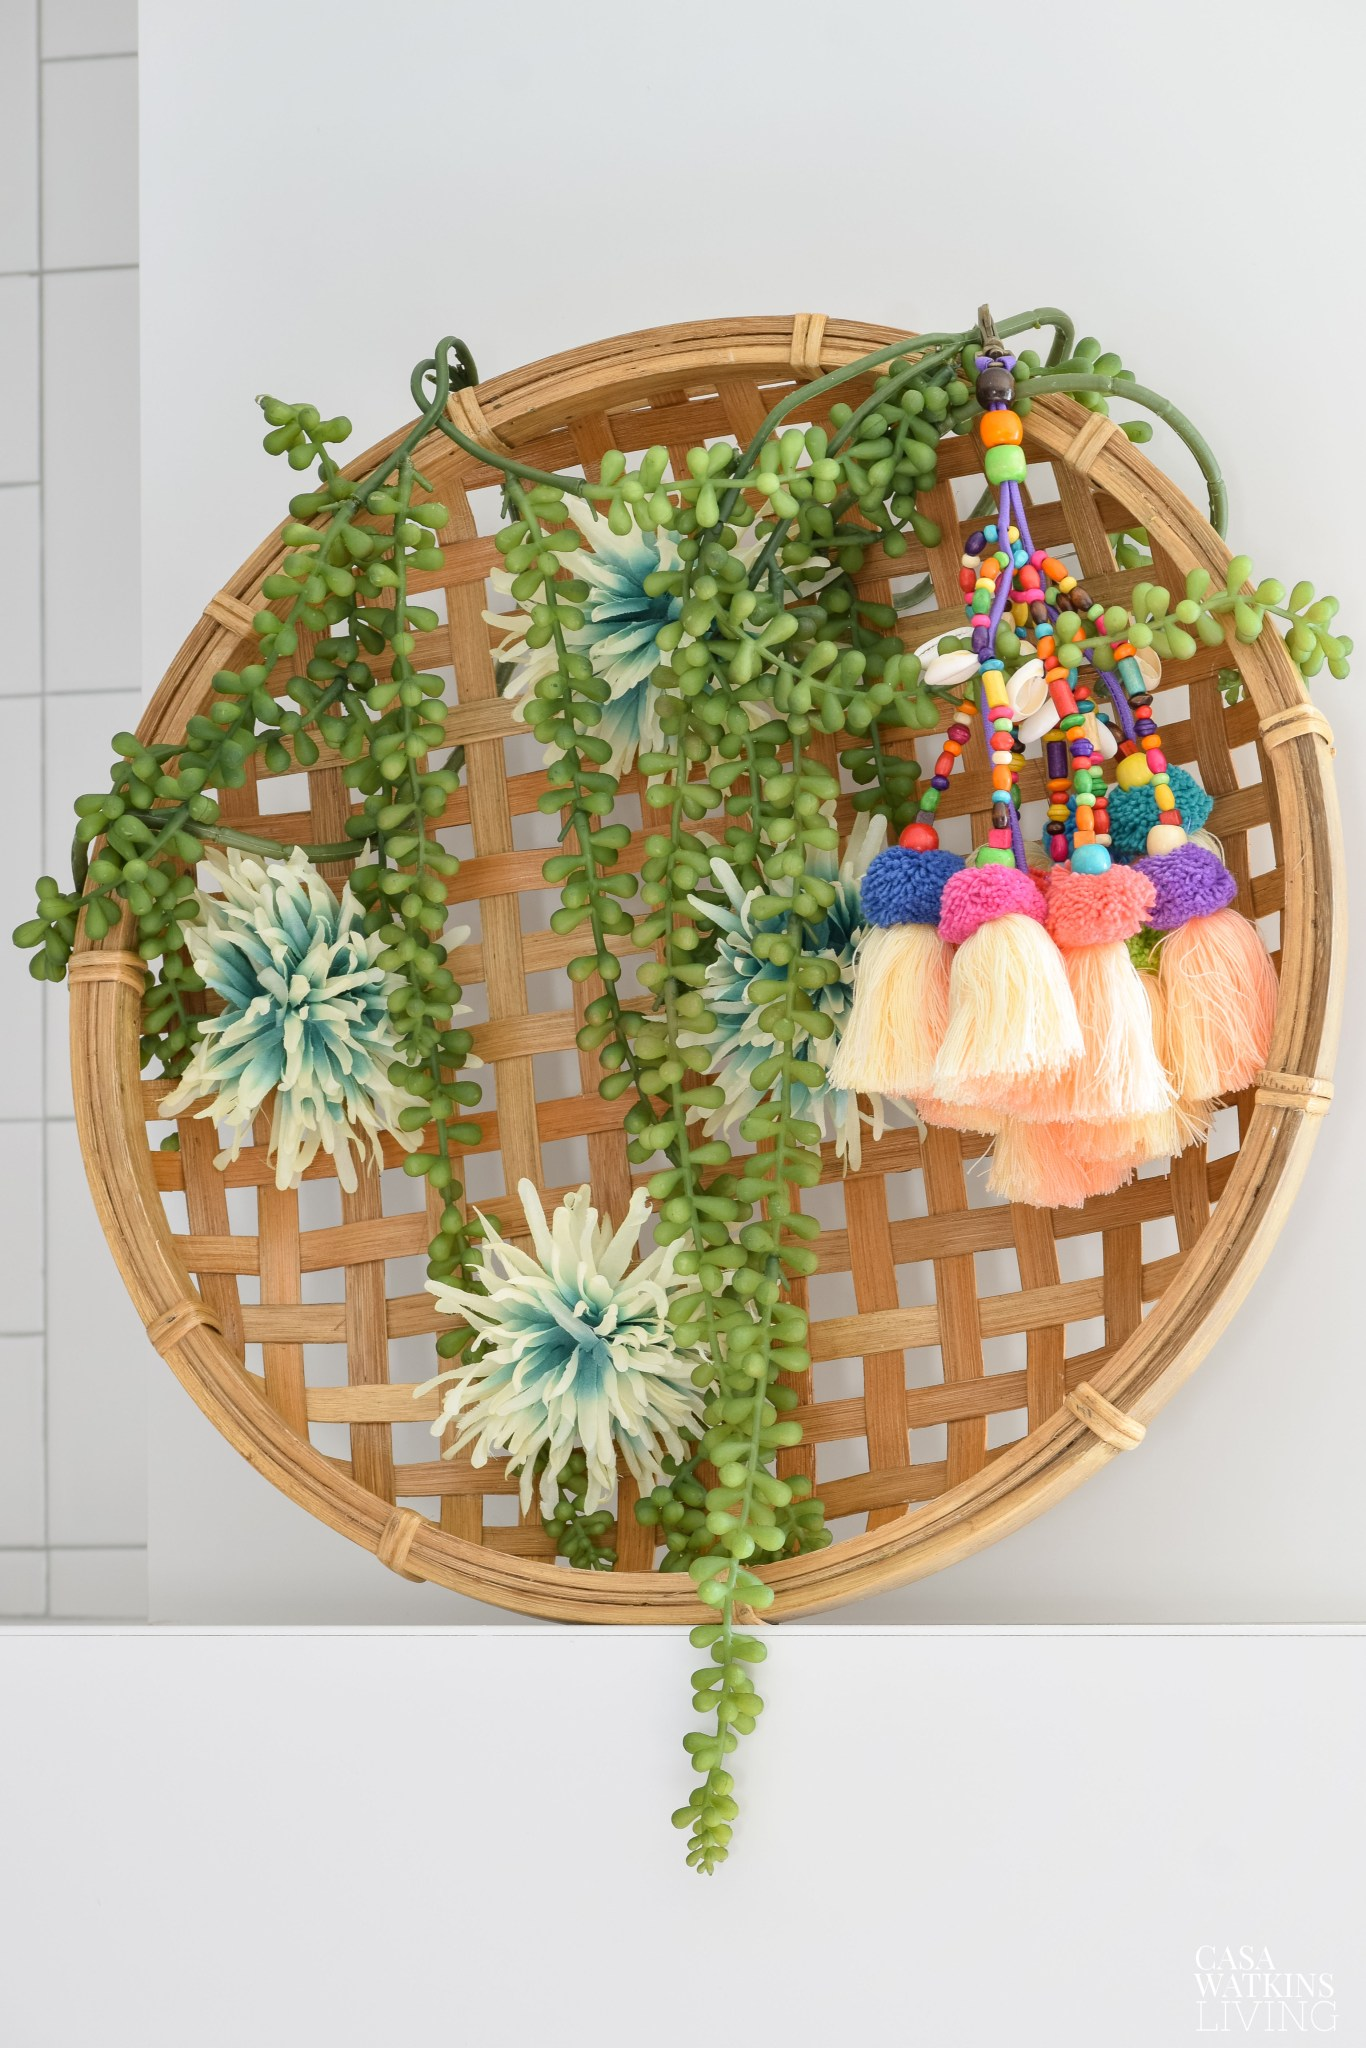 DIY basket wreath with succulents #wreath #diyideas #wreath #diycrafts #crafts #succulents #springdecor